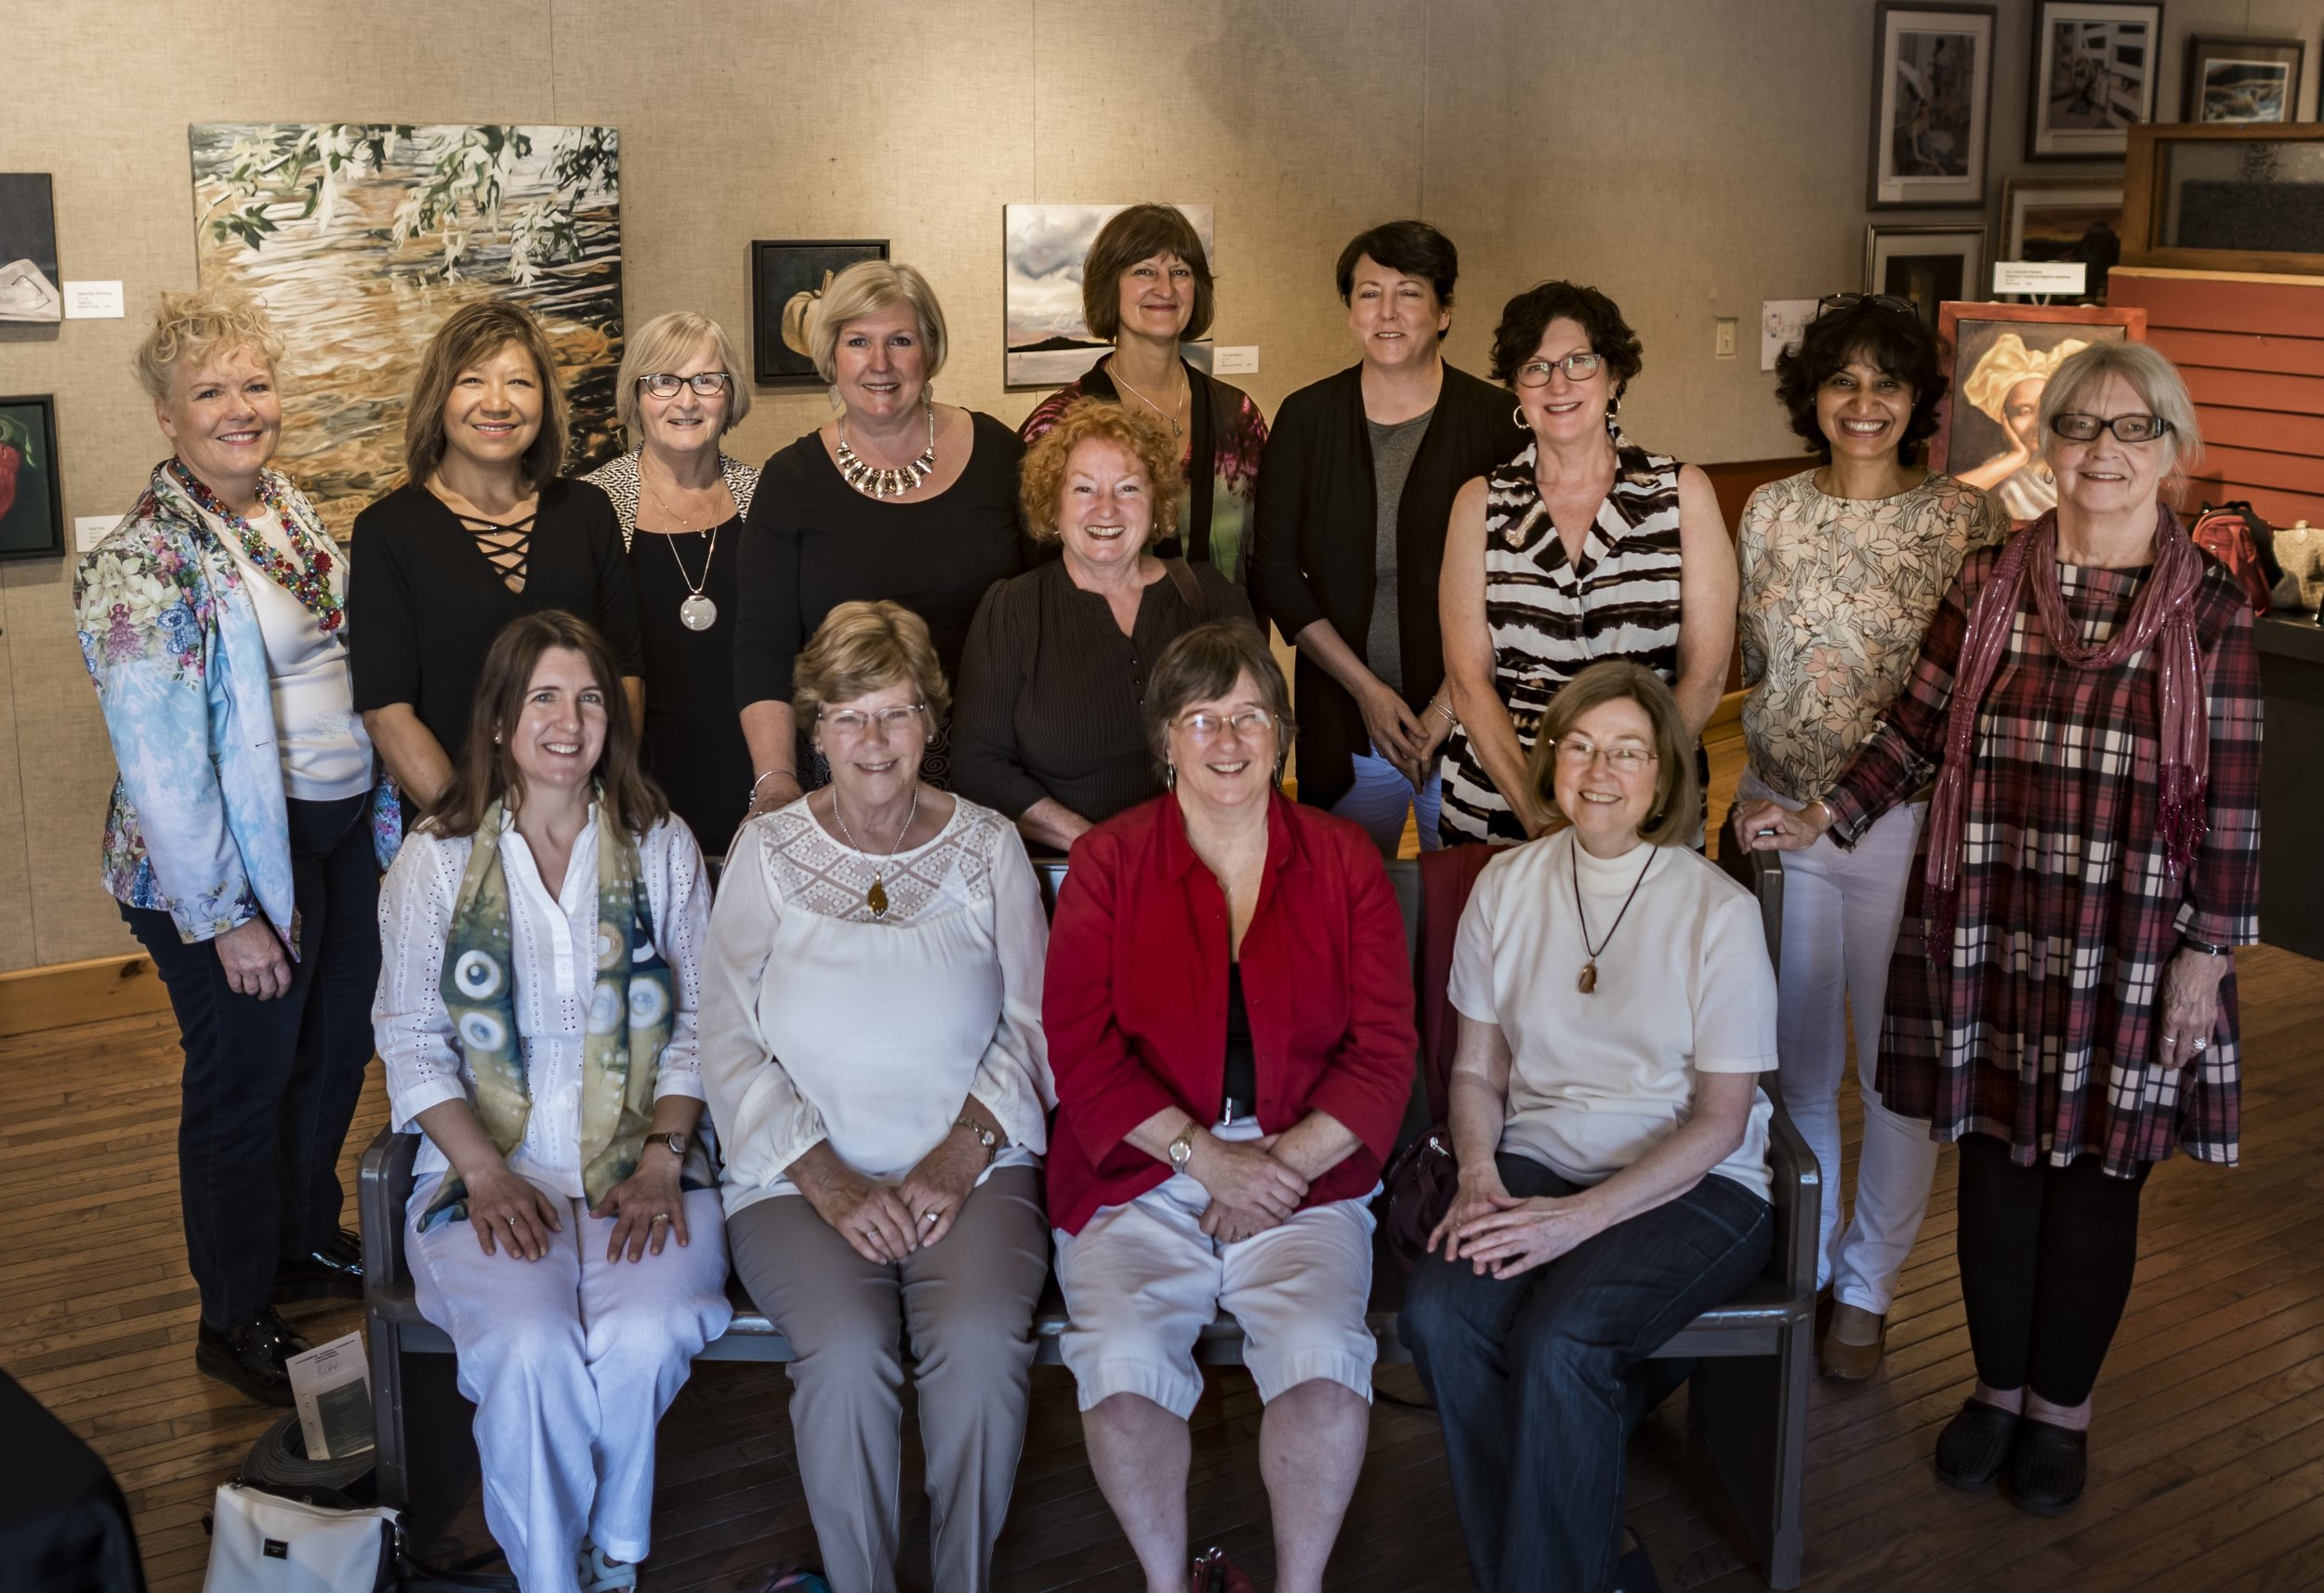 Here we are! Some of our founding members at the 2017 CGOS Inaugural Members' Exhibition at Tillsonburg Station Arts Centre in Tillsonburg, ON.  Back Row: Cathy Griggs, Marilyn Rosati, Pat Welch, Cathy Roberts, Adriana Rinaldi, Louise Doyle, Cindy Steinke, Meru Chowduri Parmar, Eileen Sakal, Front Row: Vanessa Cress Lokos, Isabel Haslam, Kathy Marlene Bailey, Sylvia Horvath